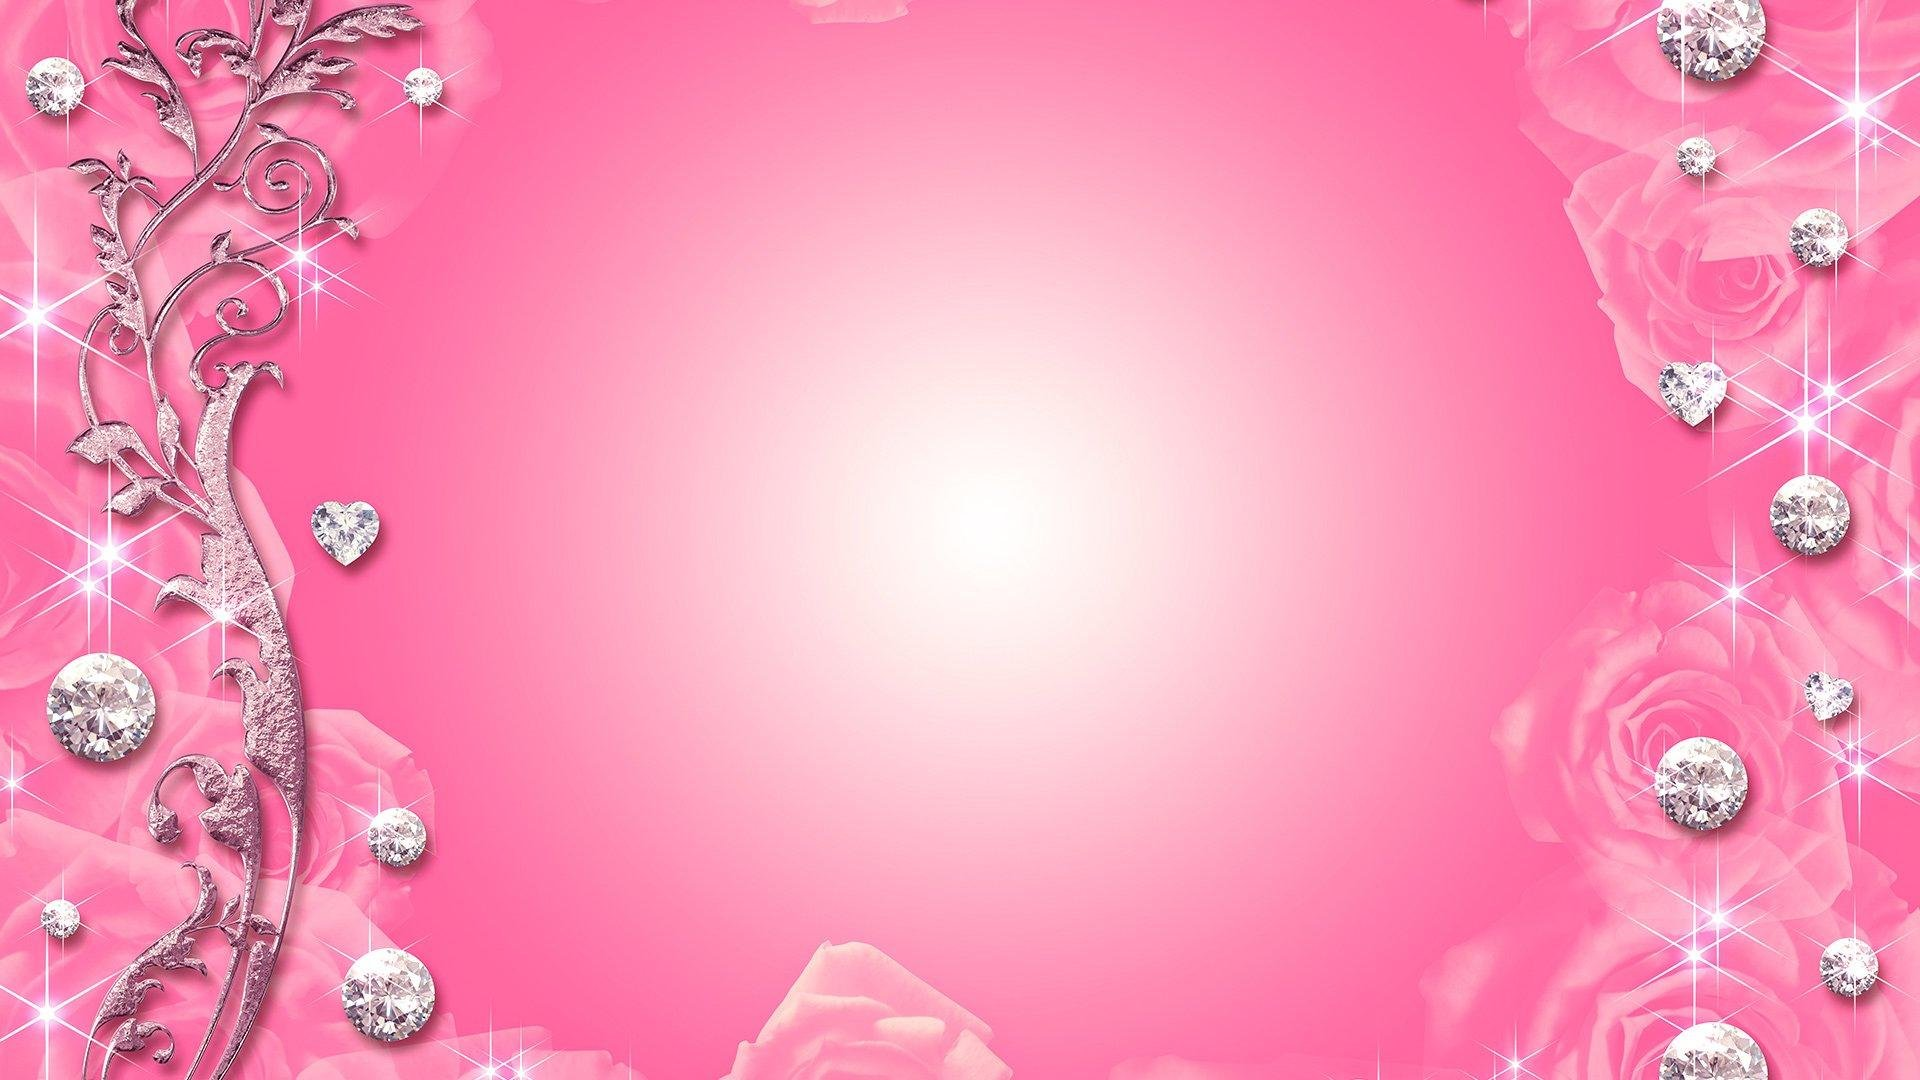 Pink Bling Wallpaper WallpaperSafari